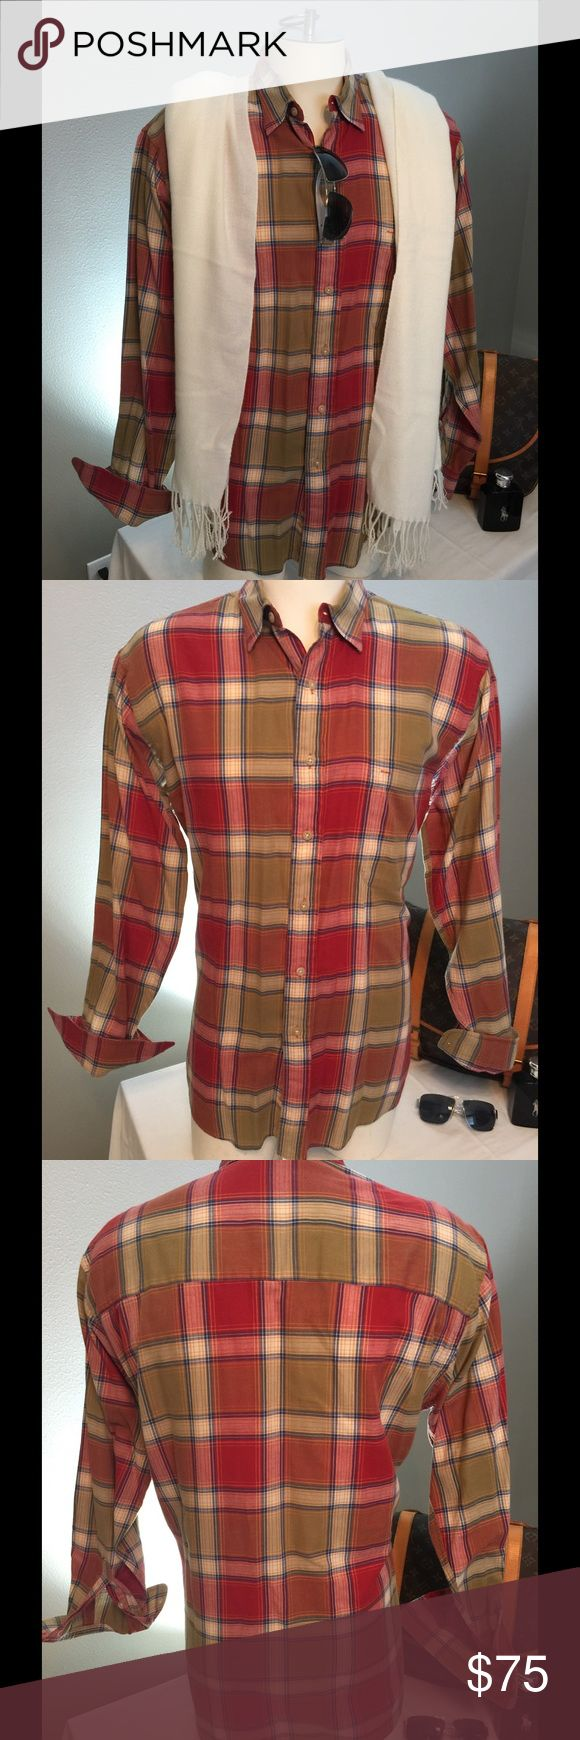 Burberry's Men's Large. Nice plaid. Feels a little more on the flannel side and Texas is just too hot for this. Great looking Shirt though. Burberry Shirts Casual Button Down Shirts